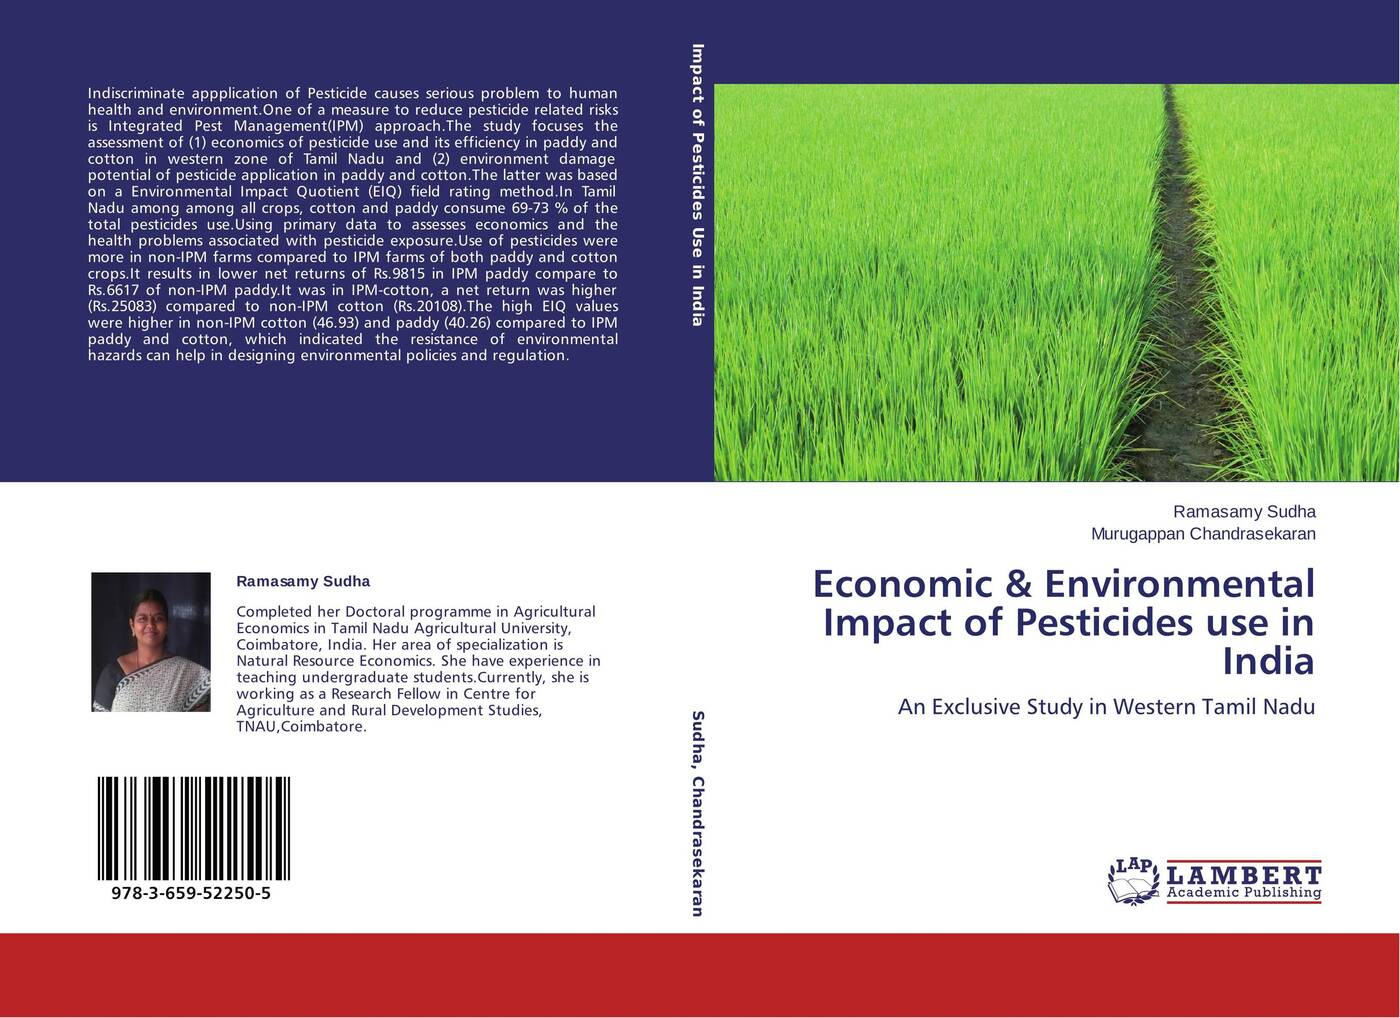 Ramasamy Sudha and Murugappan Chandrasekaran Economic & Environmental Impact of Pesticides use in India цены